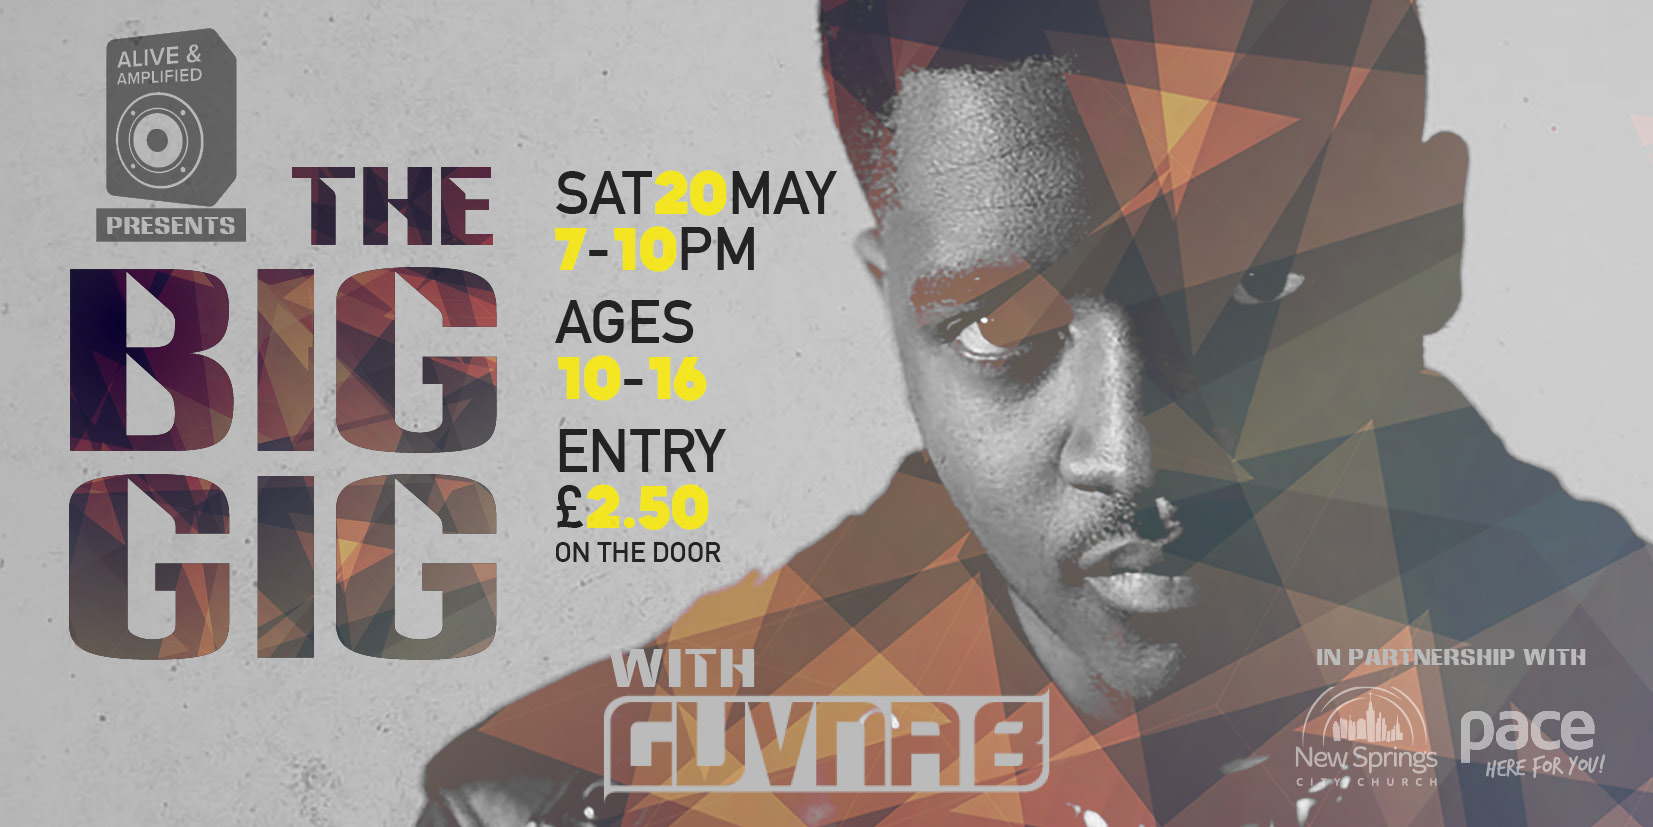 Guvna B - The Big Gig Christian Youth Event